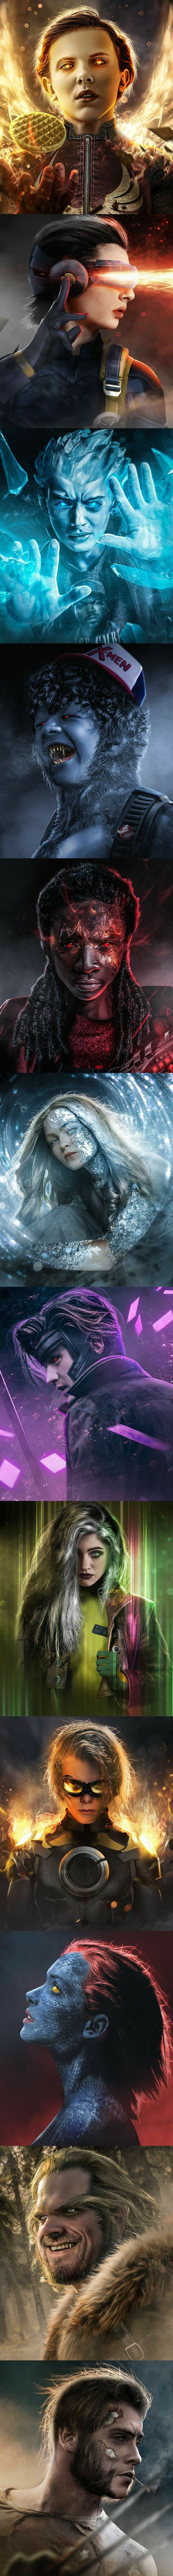 @bosslogic on Instagram  Eleven as Phoenix,  Mike as Cyclops, Will as Iceman, Dustin as Beast, Lucas as Bishop, Max as Emma Frost, Steve as Gambit, Nancy as Rogue, Jonathan as Cannonball, Joyce as Mystique, Hopper as Saber Tooth, Billy as Wolverine